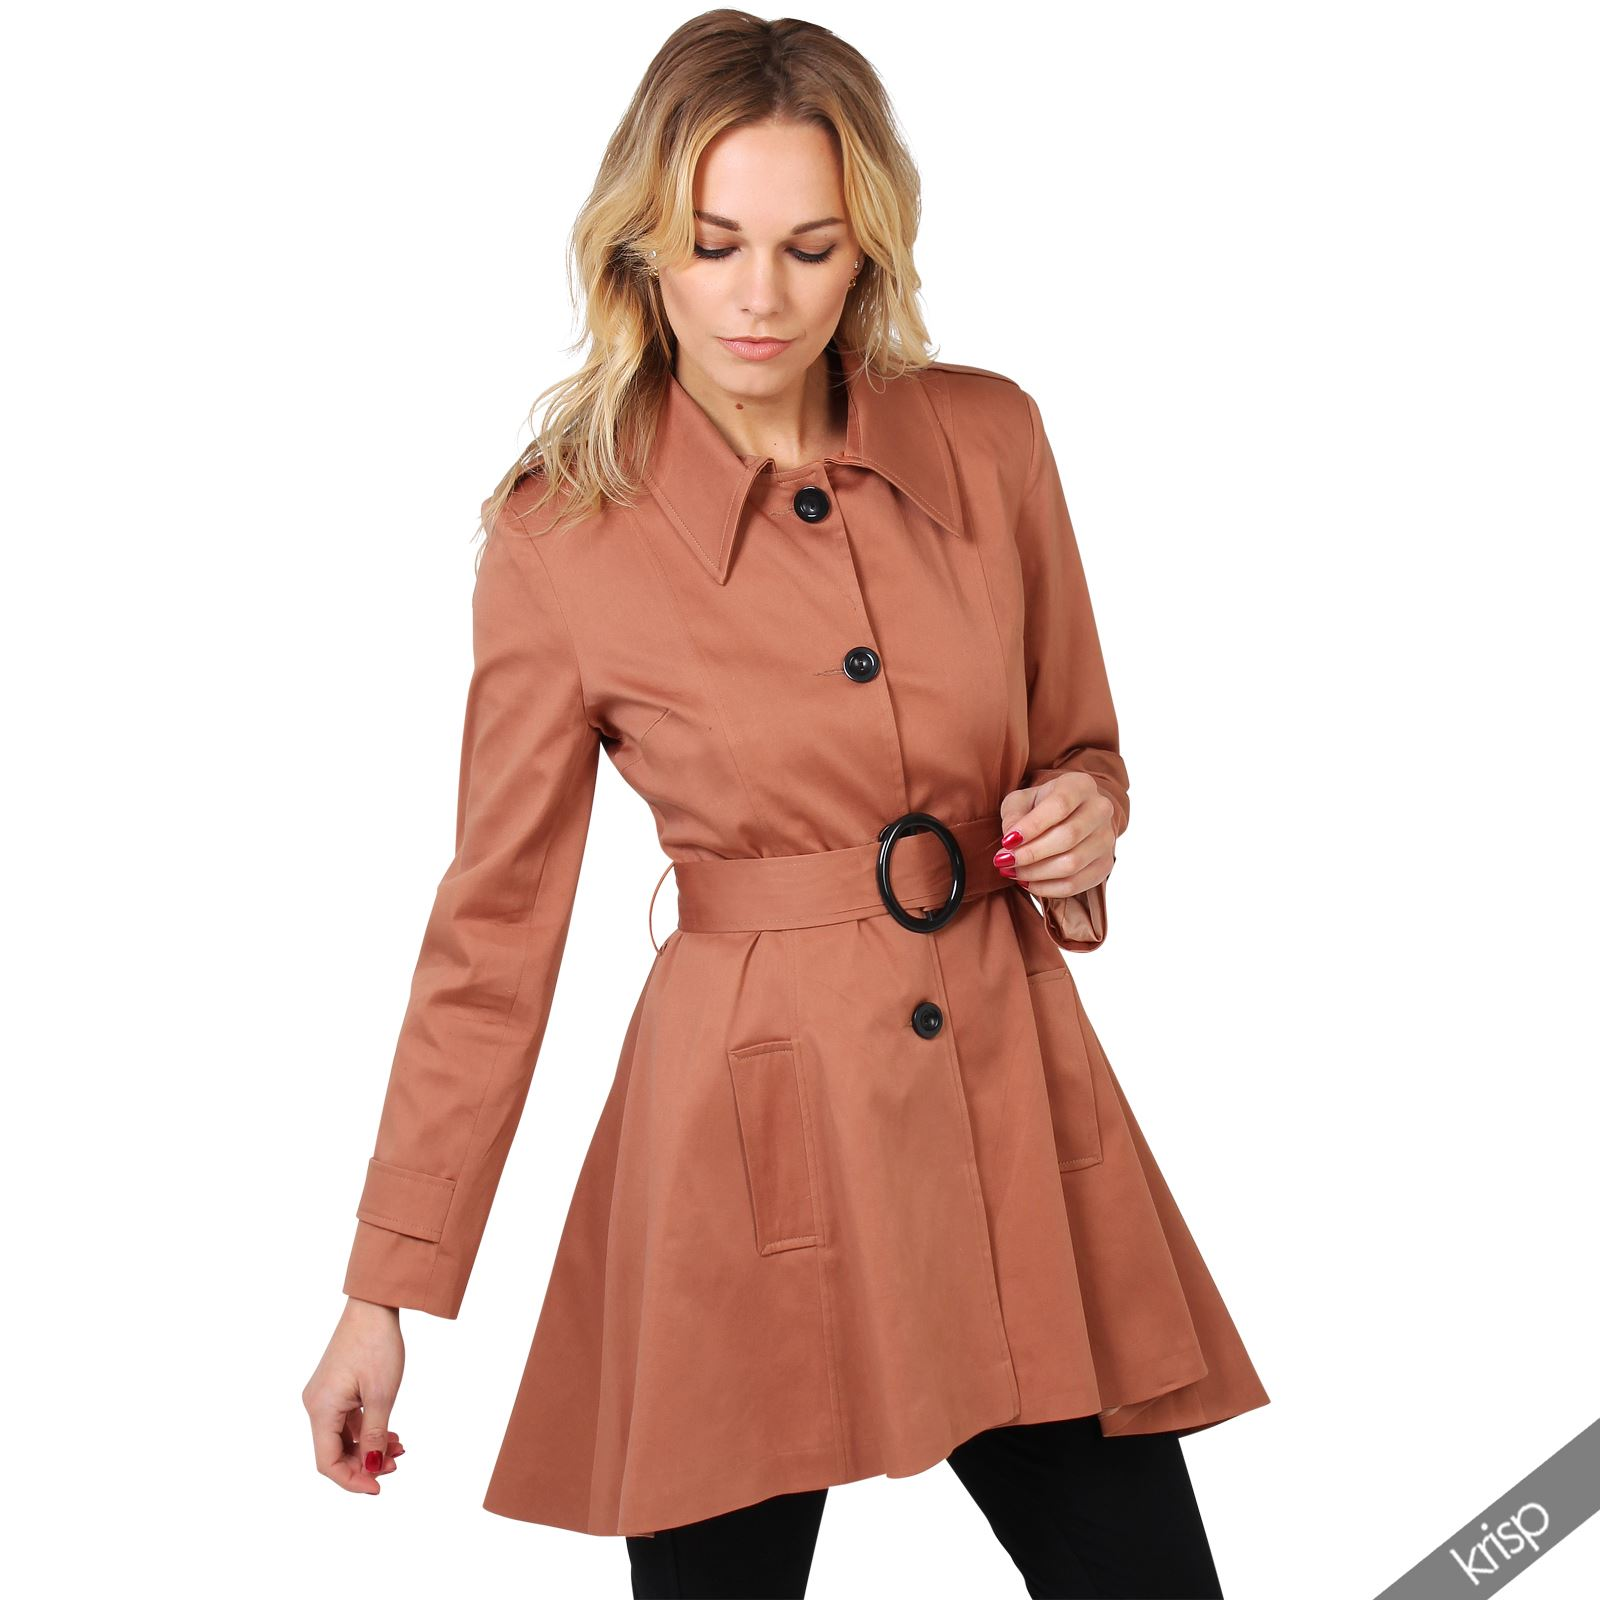 Shop the latest styles of Womens Raincoat Coats at Macys. Check out our designer collection of chic coats including peacoats, trench coats, puffer coats and more! Macy's Presents: The Edit- A curated mix of fashion and inspiration Check It Out. Free Shipping with $49 purchase + .